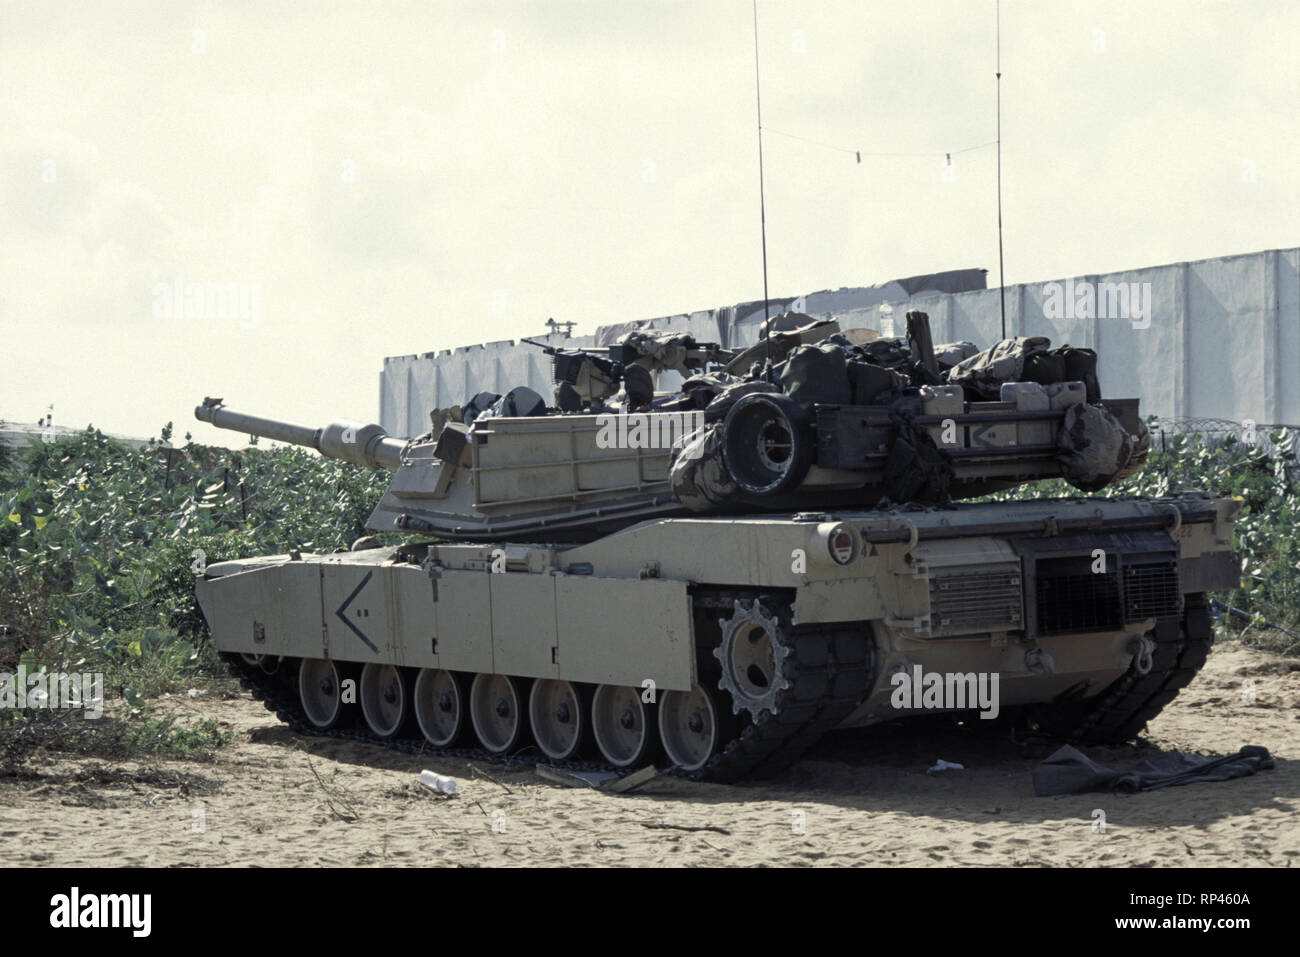 136065c1bdf604 16th October 1993 A U.S. Army M1A1 Abrams tank of the 24th Infantry  Division, 1st Battalion of the 64th Armored Regiment at UNOSOM Headquarters  in Mogadishu ...